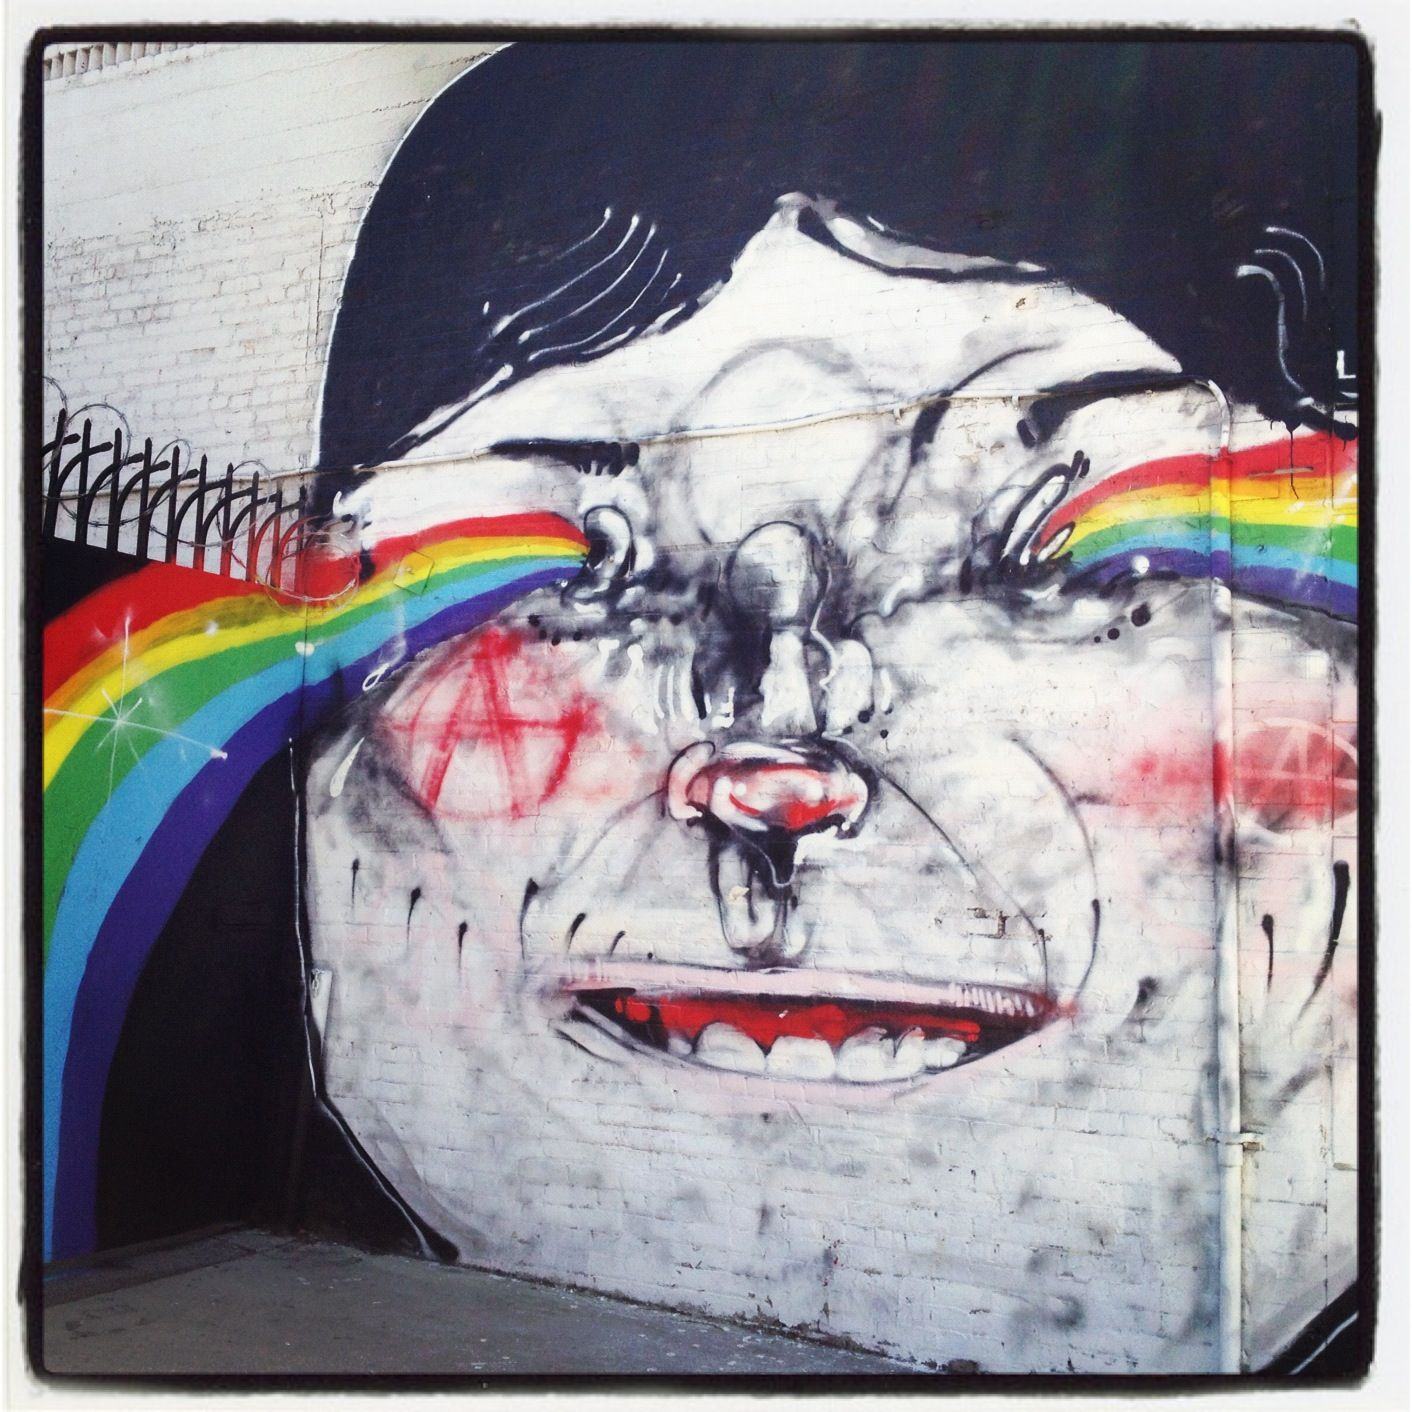 Artwork By Anthony Lister in Los Angeles